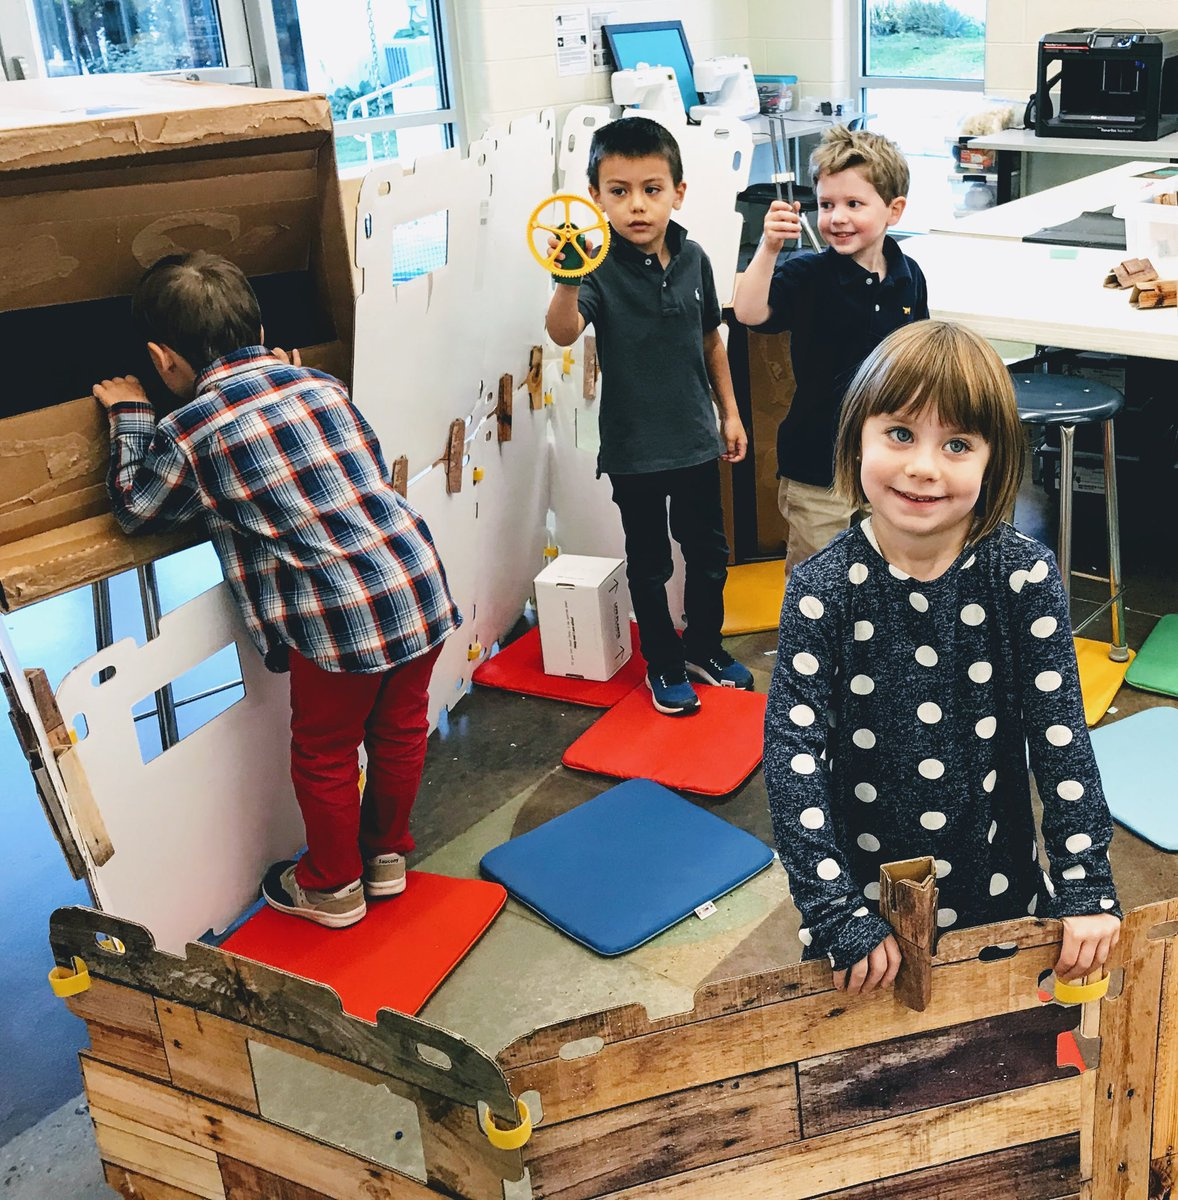 There are times when you just have to make a fort #GlobalMakerDay #prek